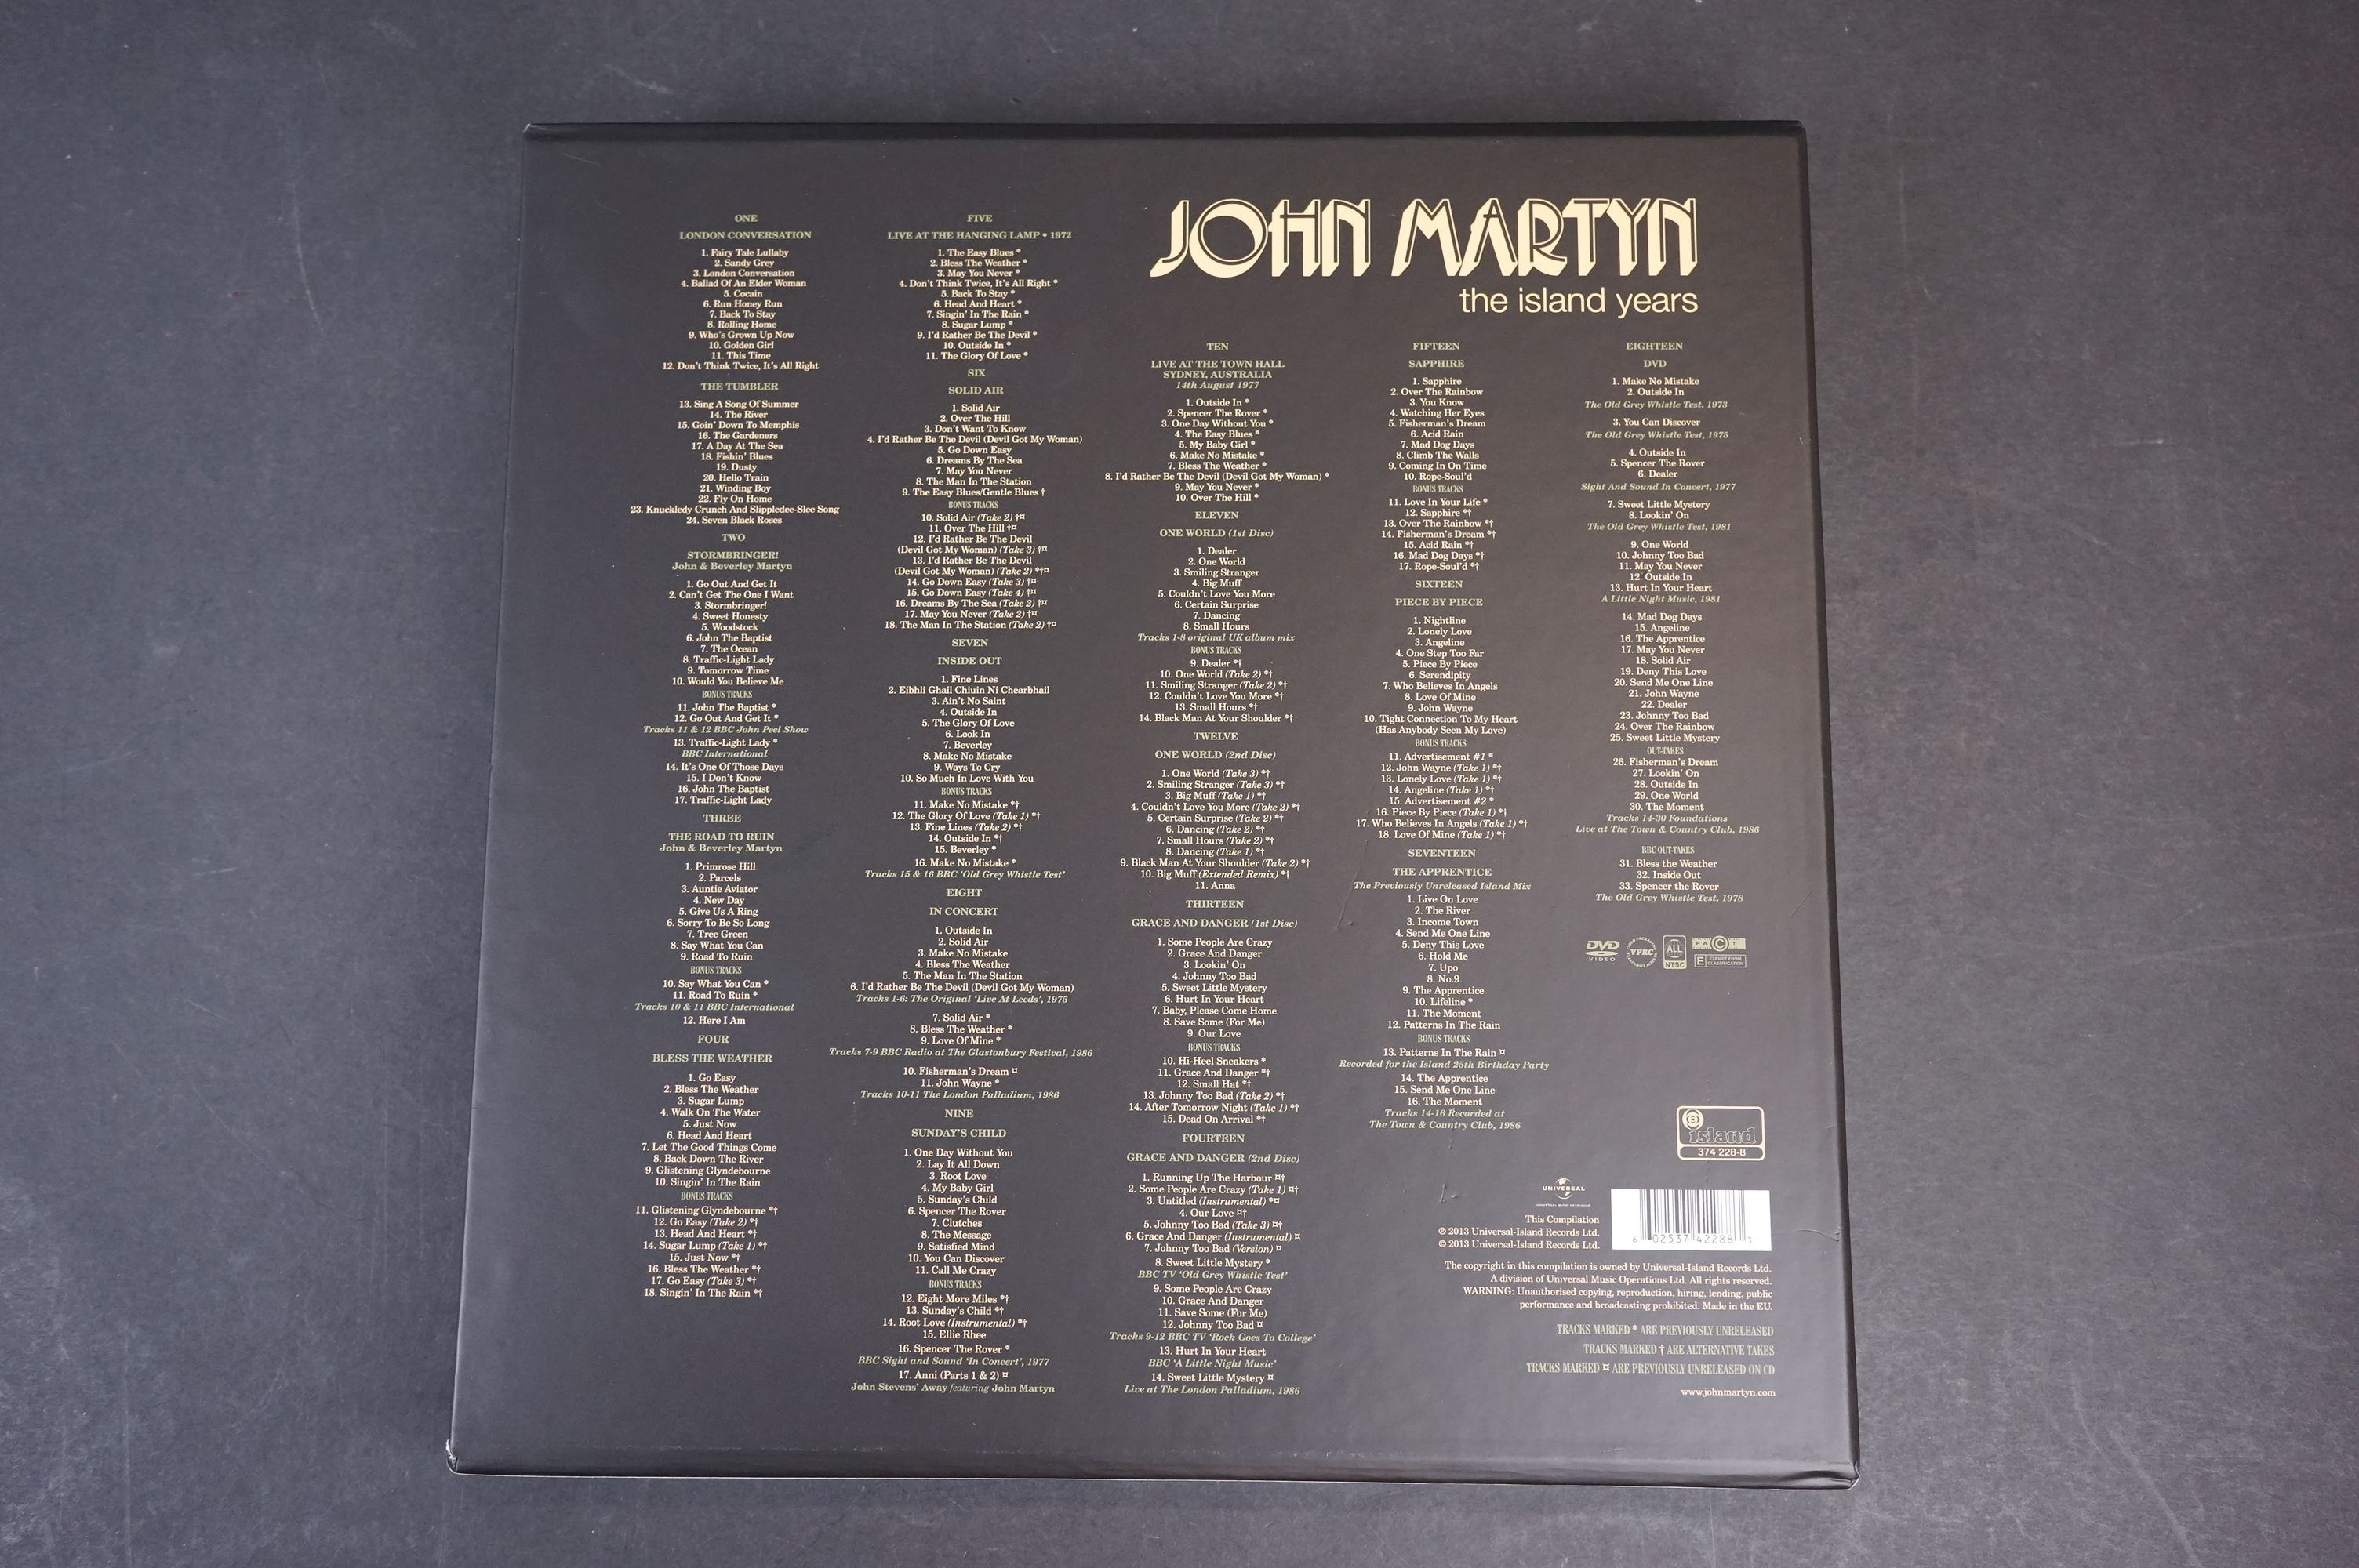 CD / DVD / Vinyl - John Martyn The Island Years 374228-8 complete and ex - Image 10 of 10